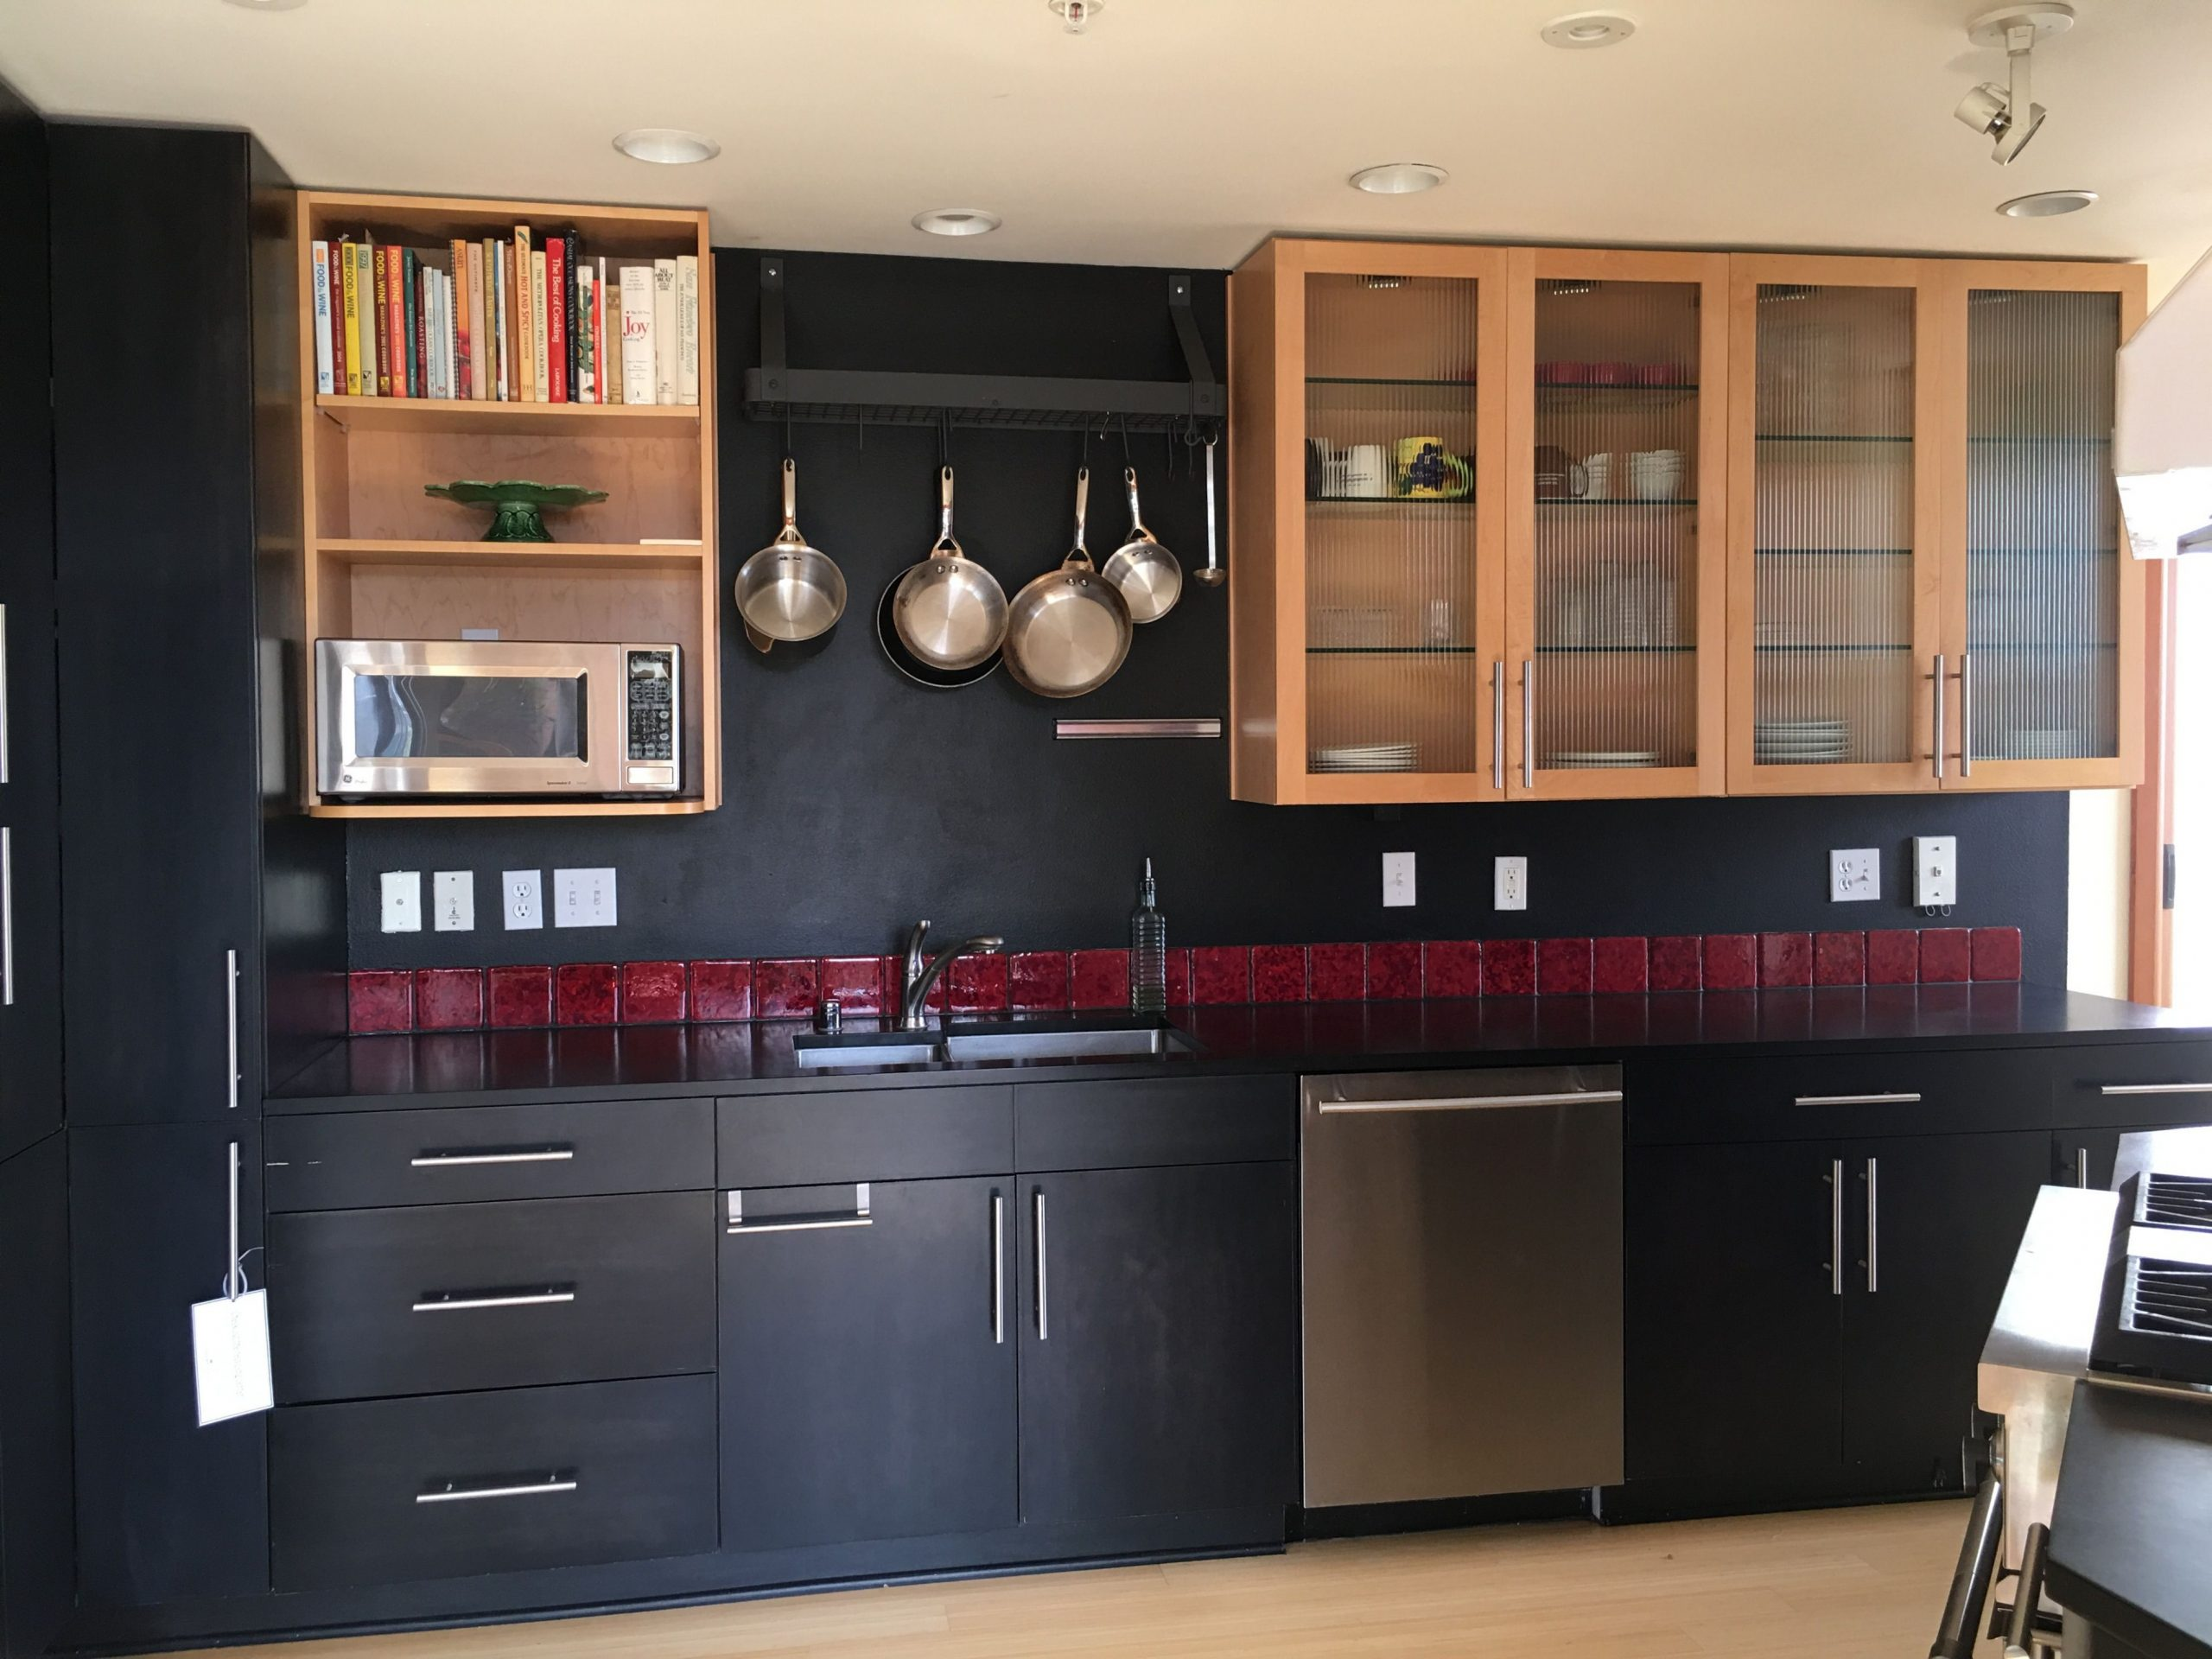 Wall shelving will be replaced with matching reeled glass-front  - Shorter Kitchen Base Cabinets